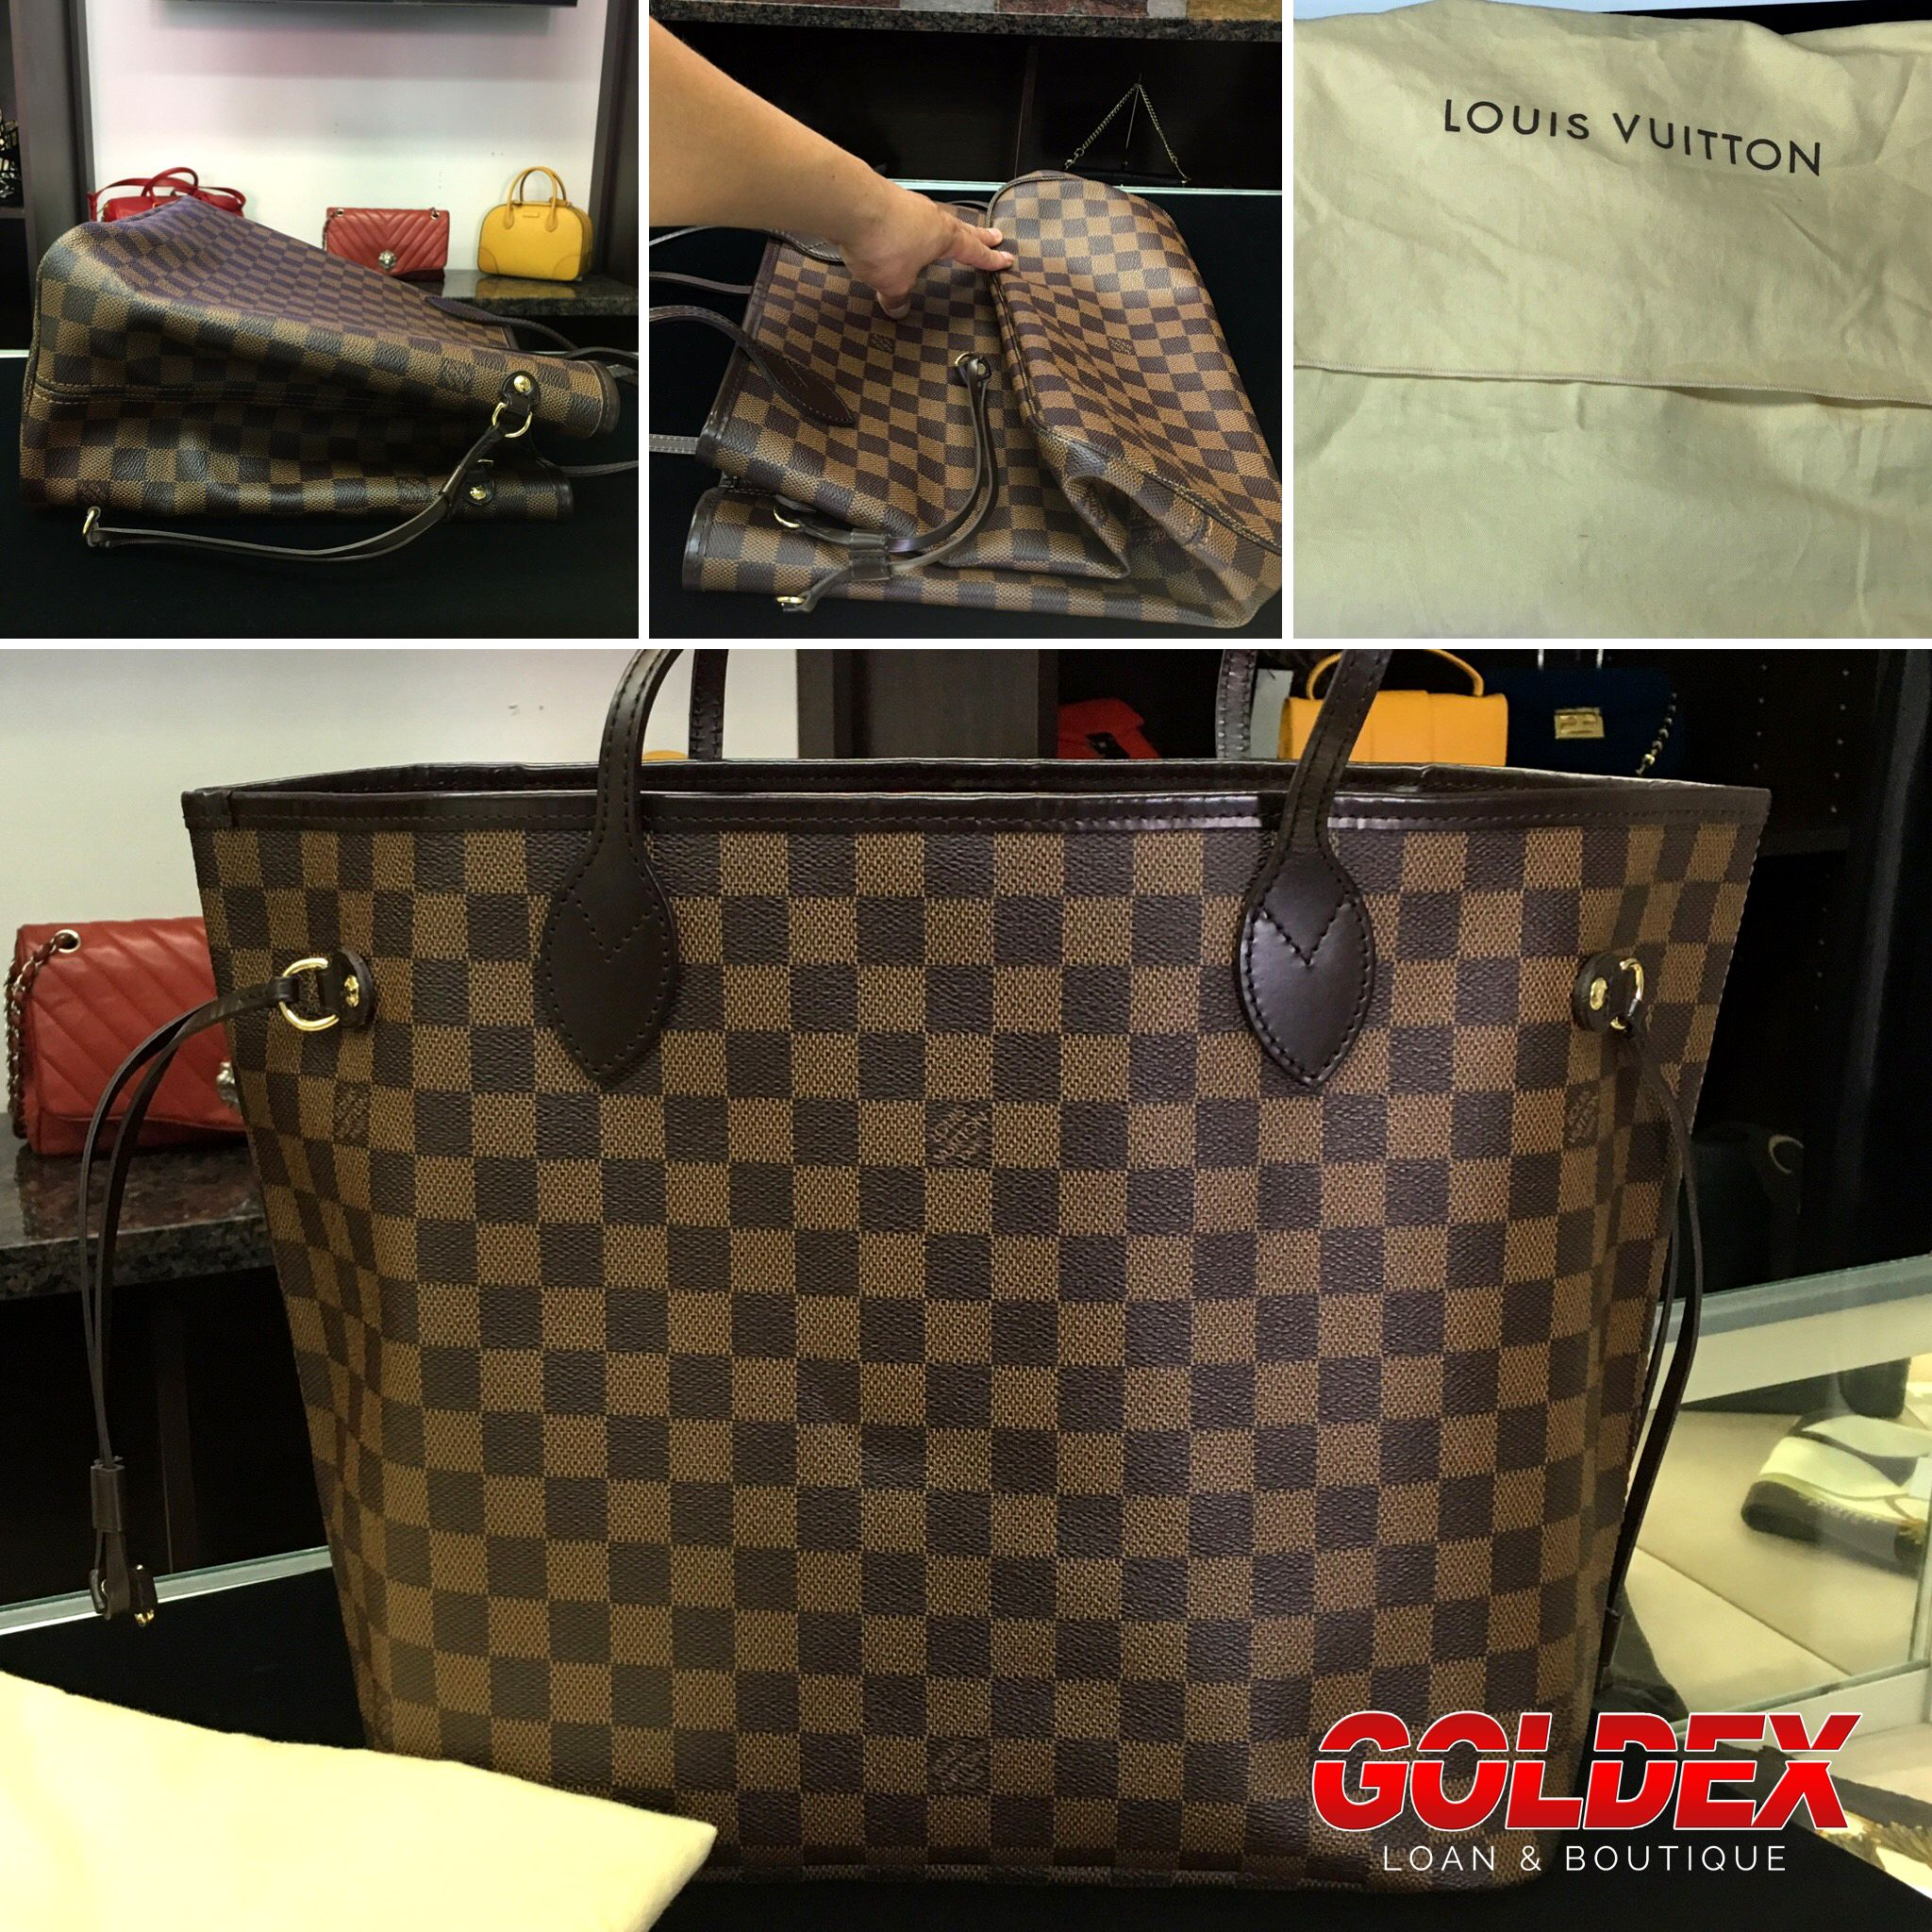 2cf5343c662e How To Fold   Store Louis Vuitton Neverfull 1. Fold in corners 2. Push  drawstring runner in so corners stayed folded in 3. Fold the bottom 4 Store  inside ...